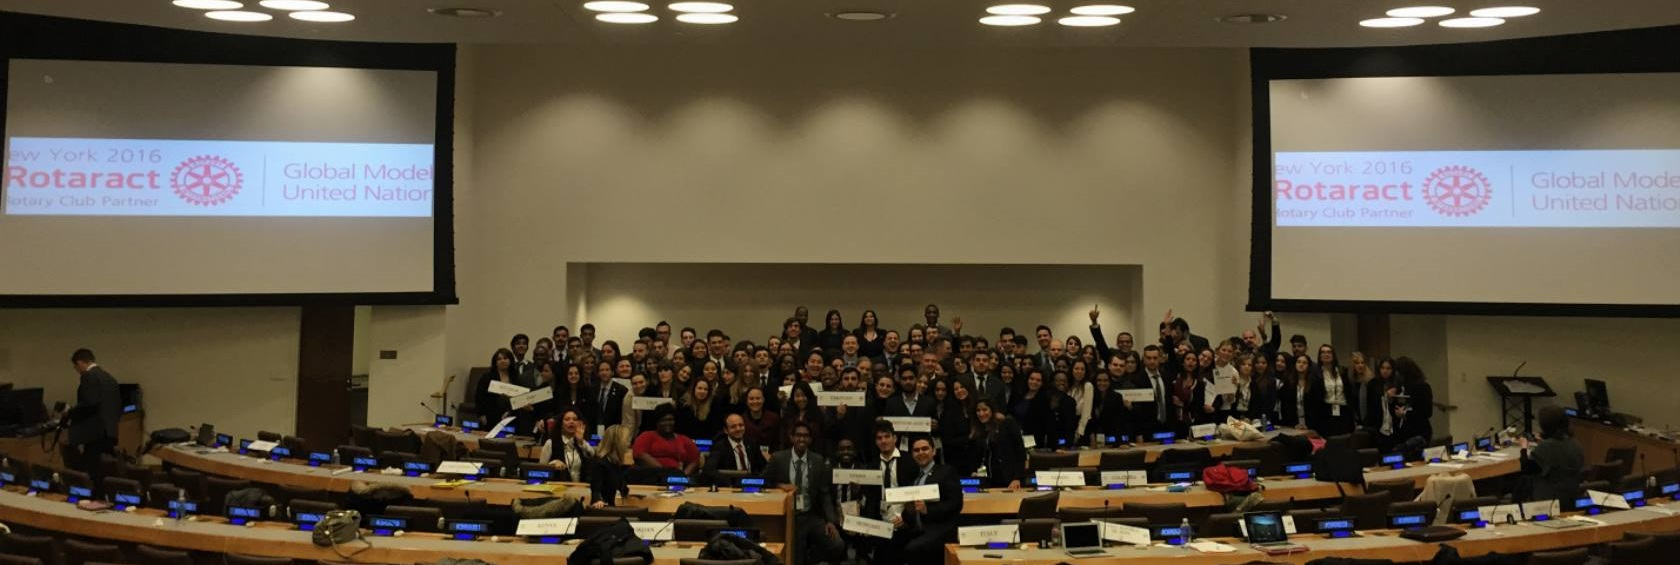 New York Rotaract MUN opportunity